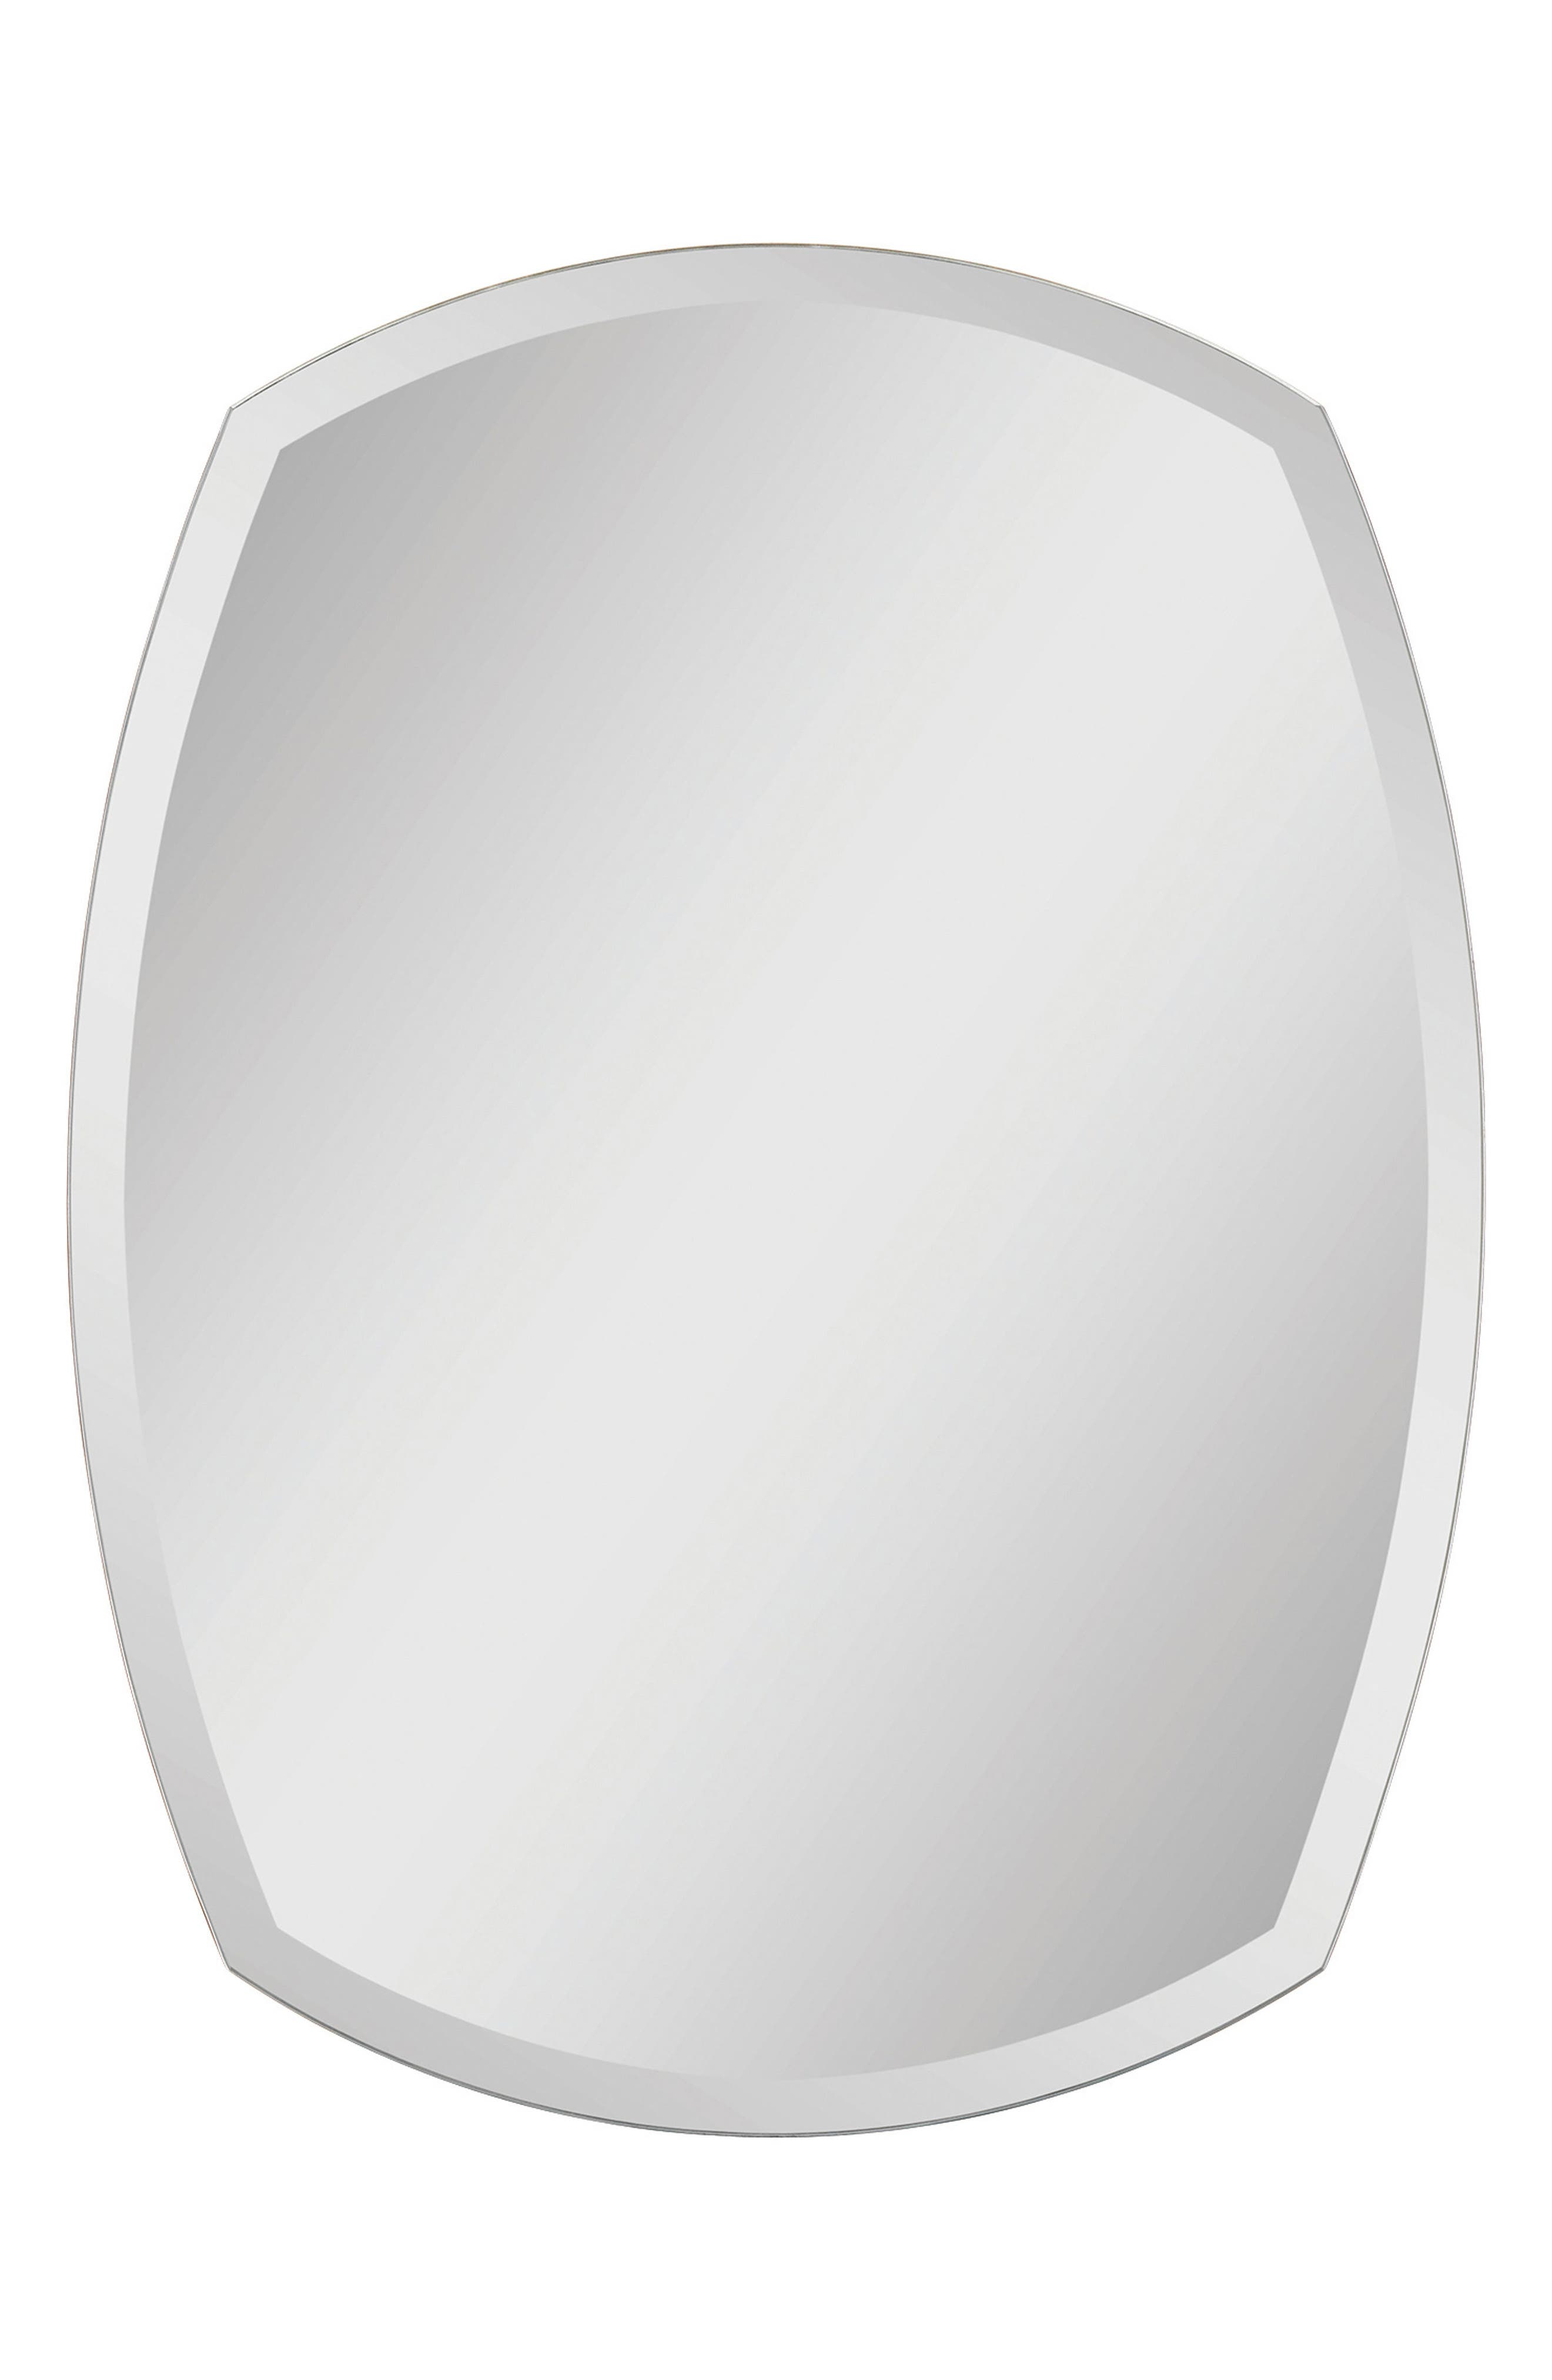 Spalding Mirror,                             Main thumbnail 1, color,                             100